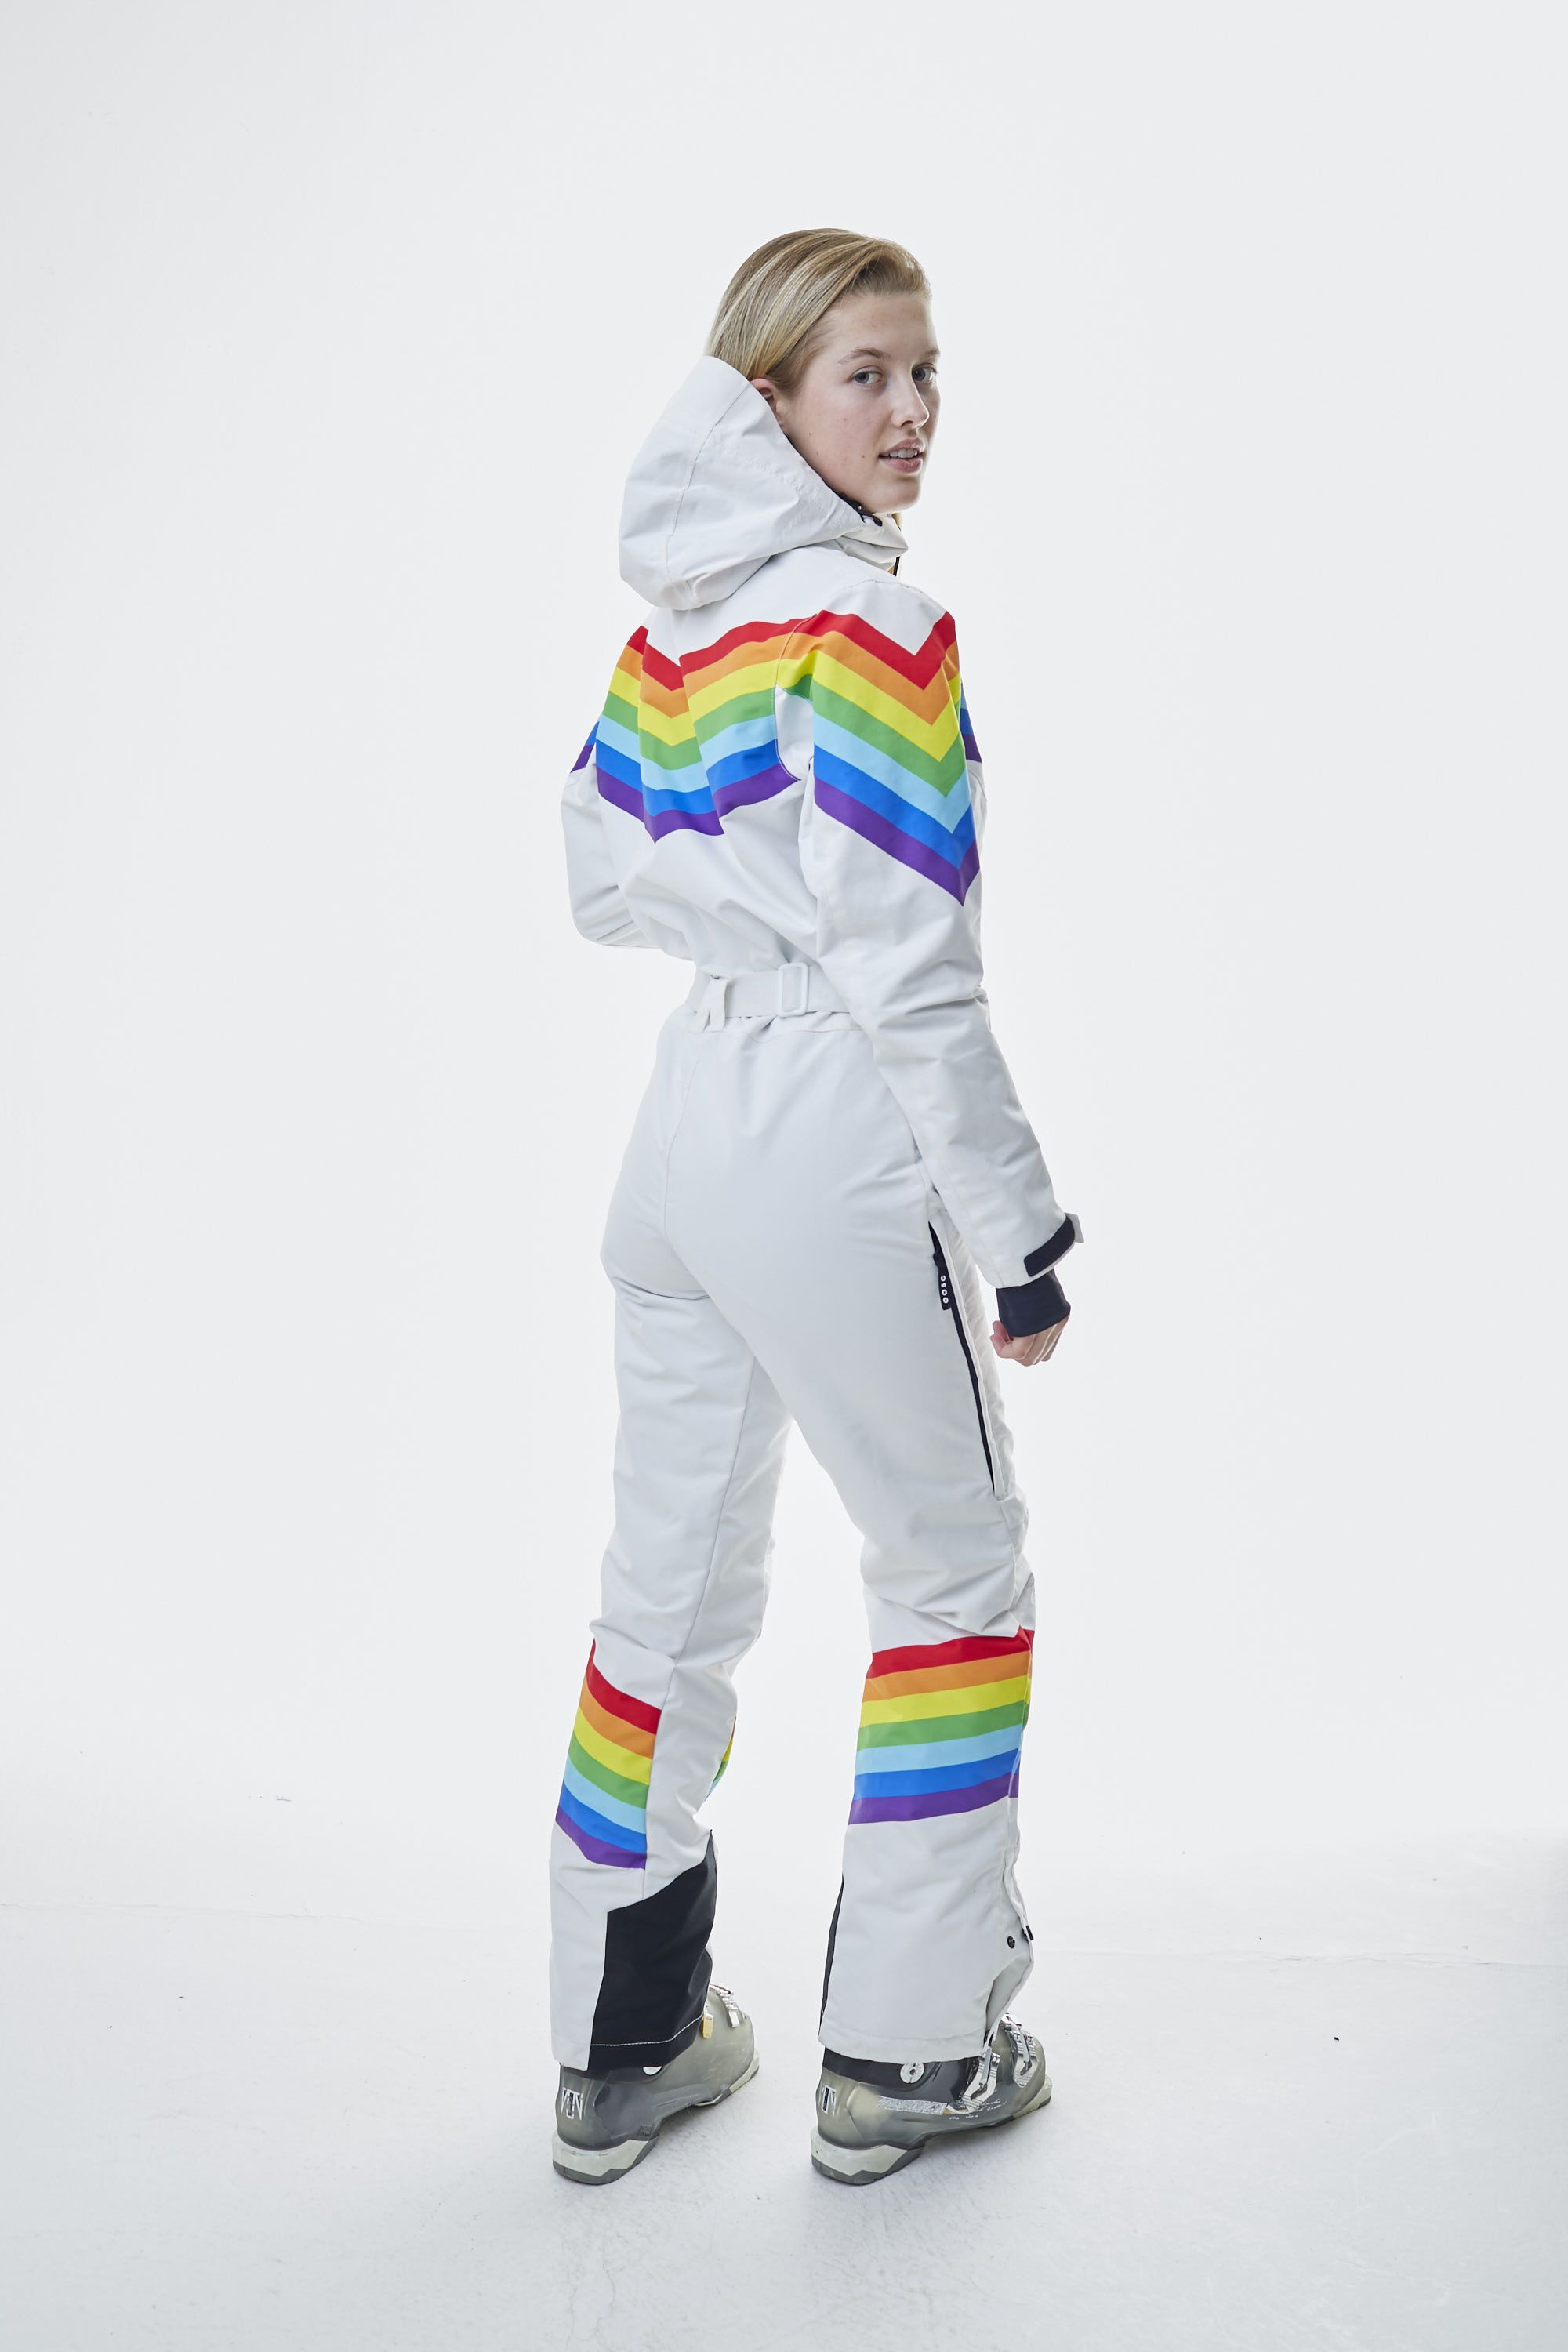 Rainbow Road Women S Ski Suit Oosc Clothing Ski Women Skiing Outfit Clothes